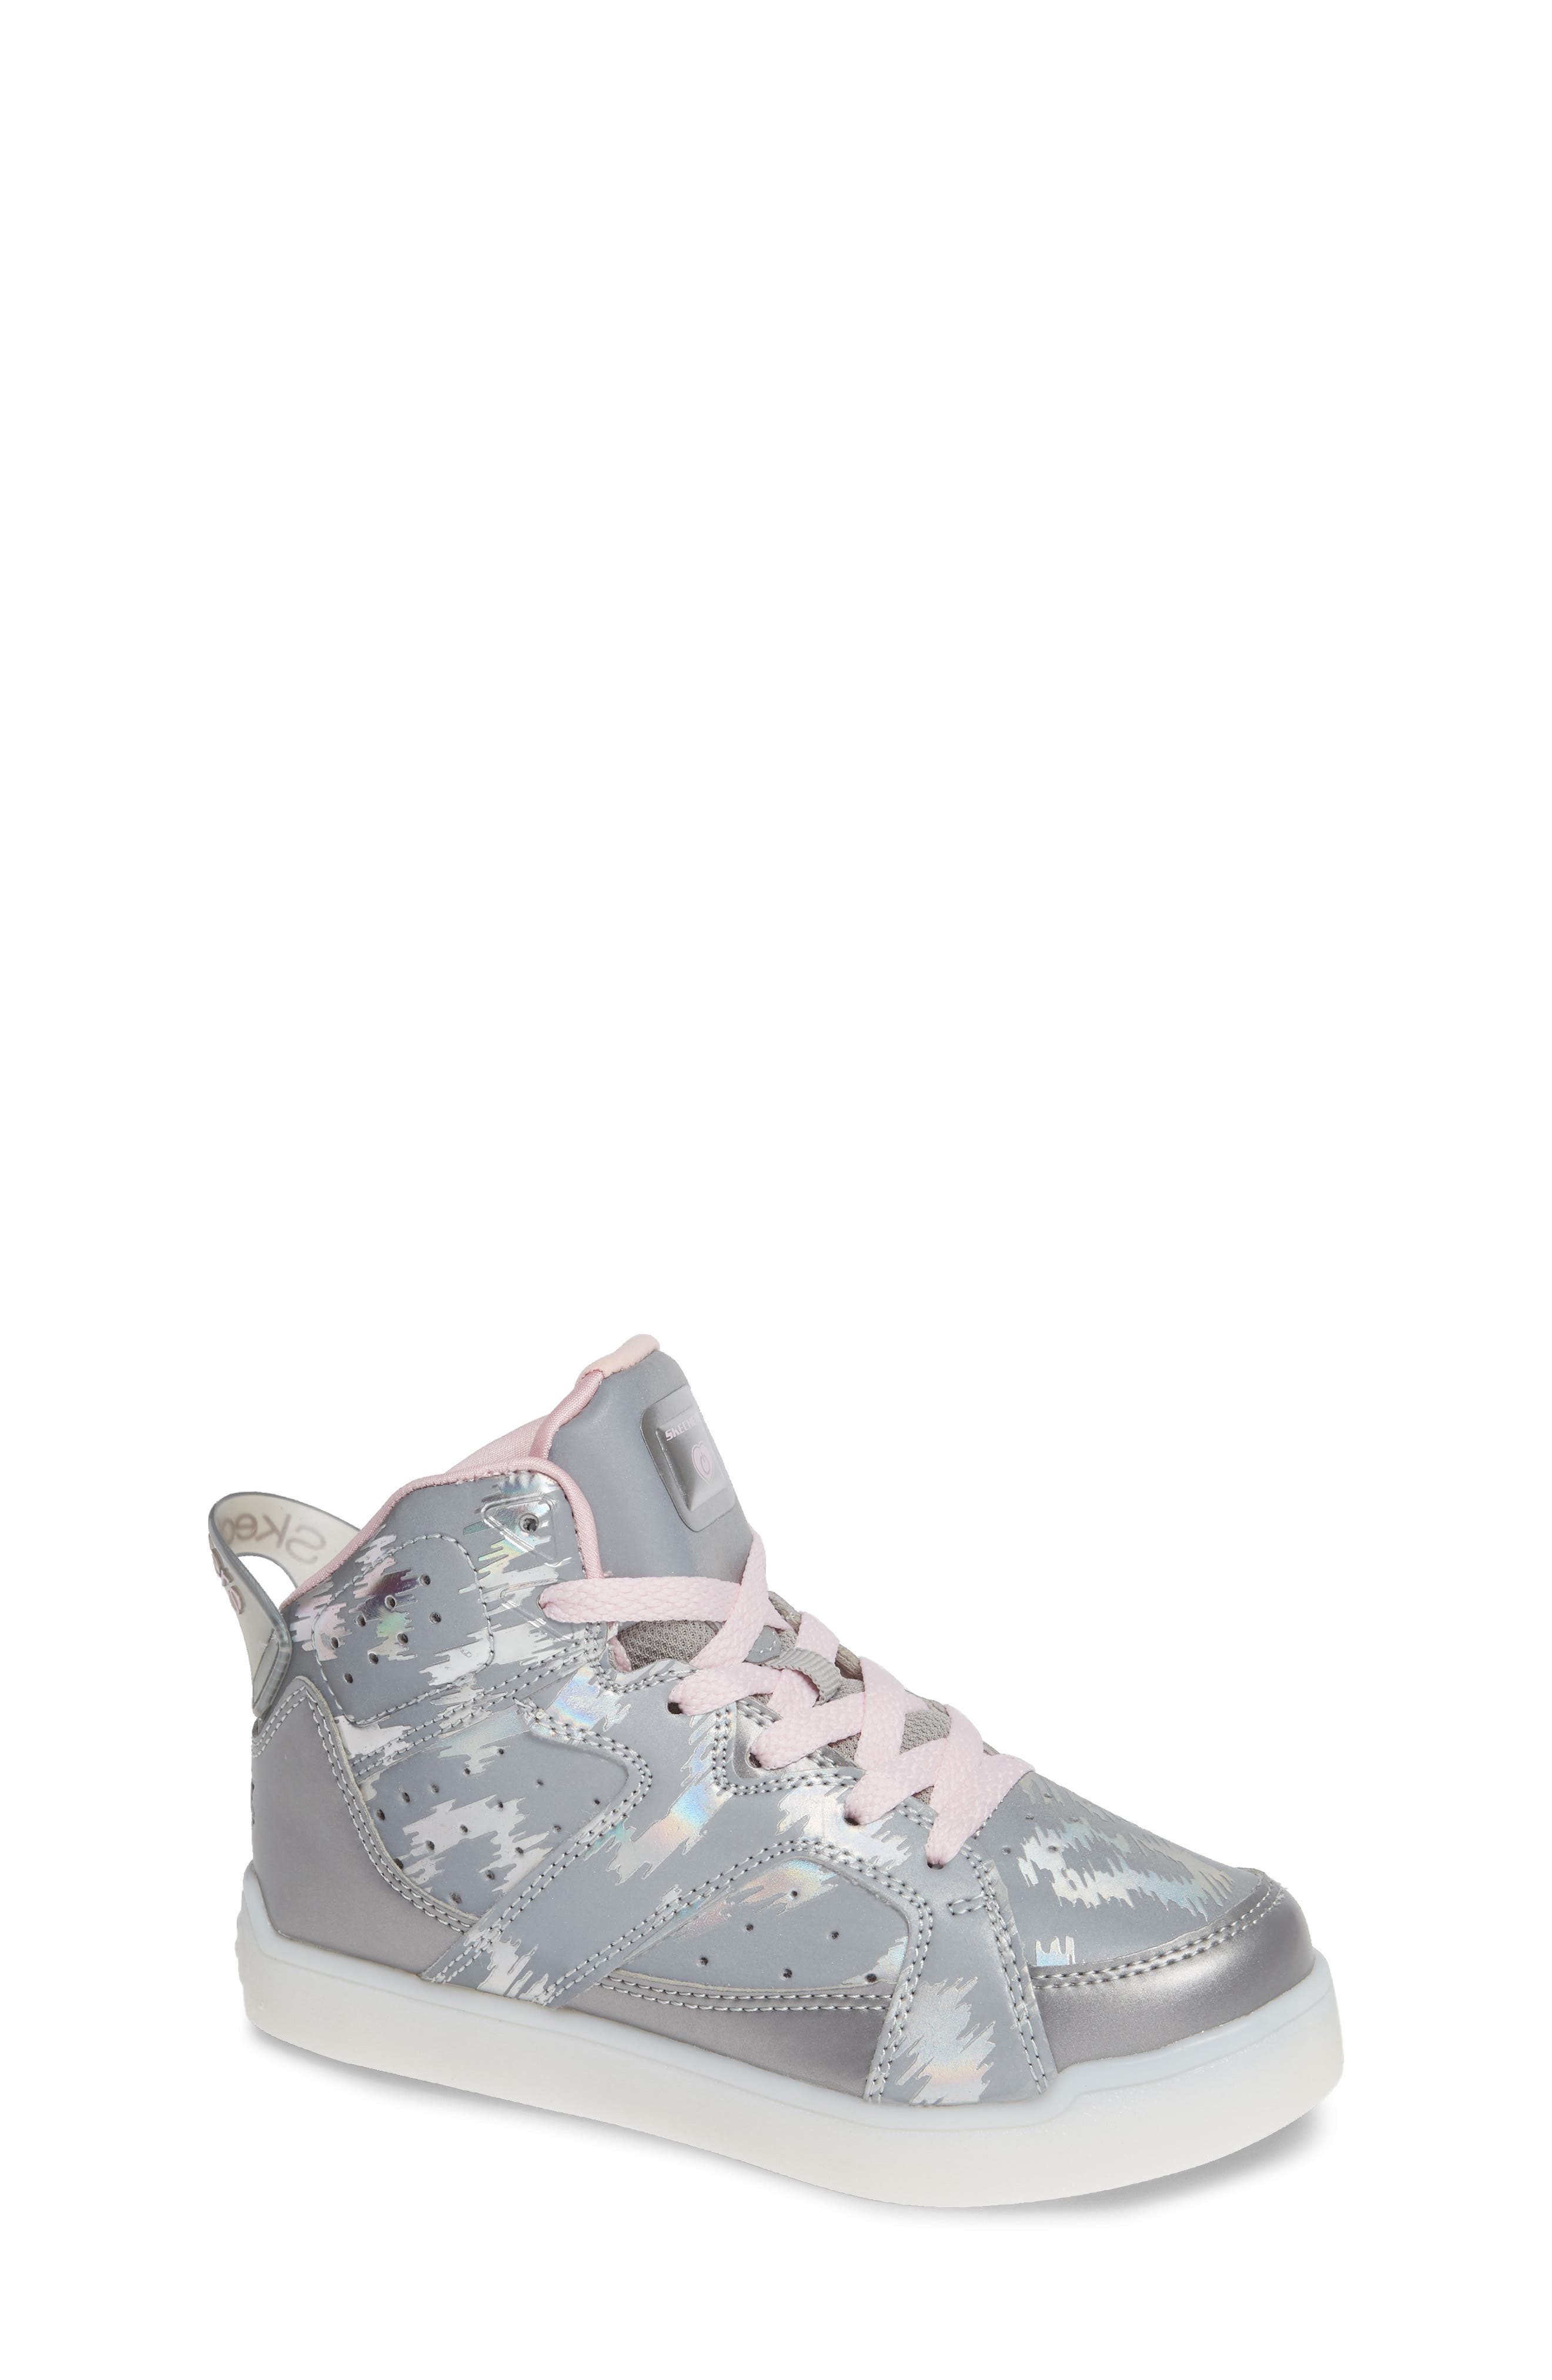 Energy Lights Pro Reflecti-Fab Sneaker,                         Main,                         color, SILVER